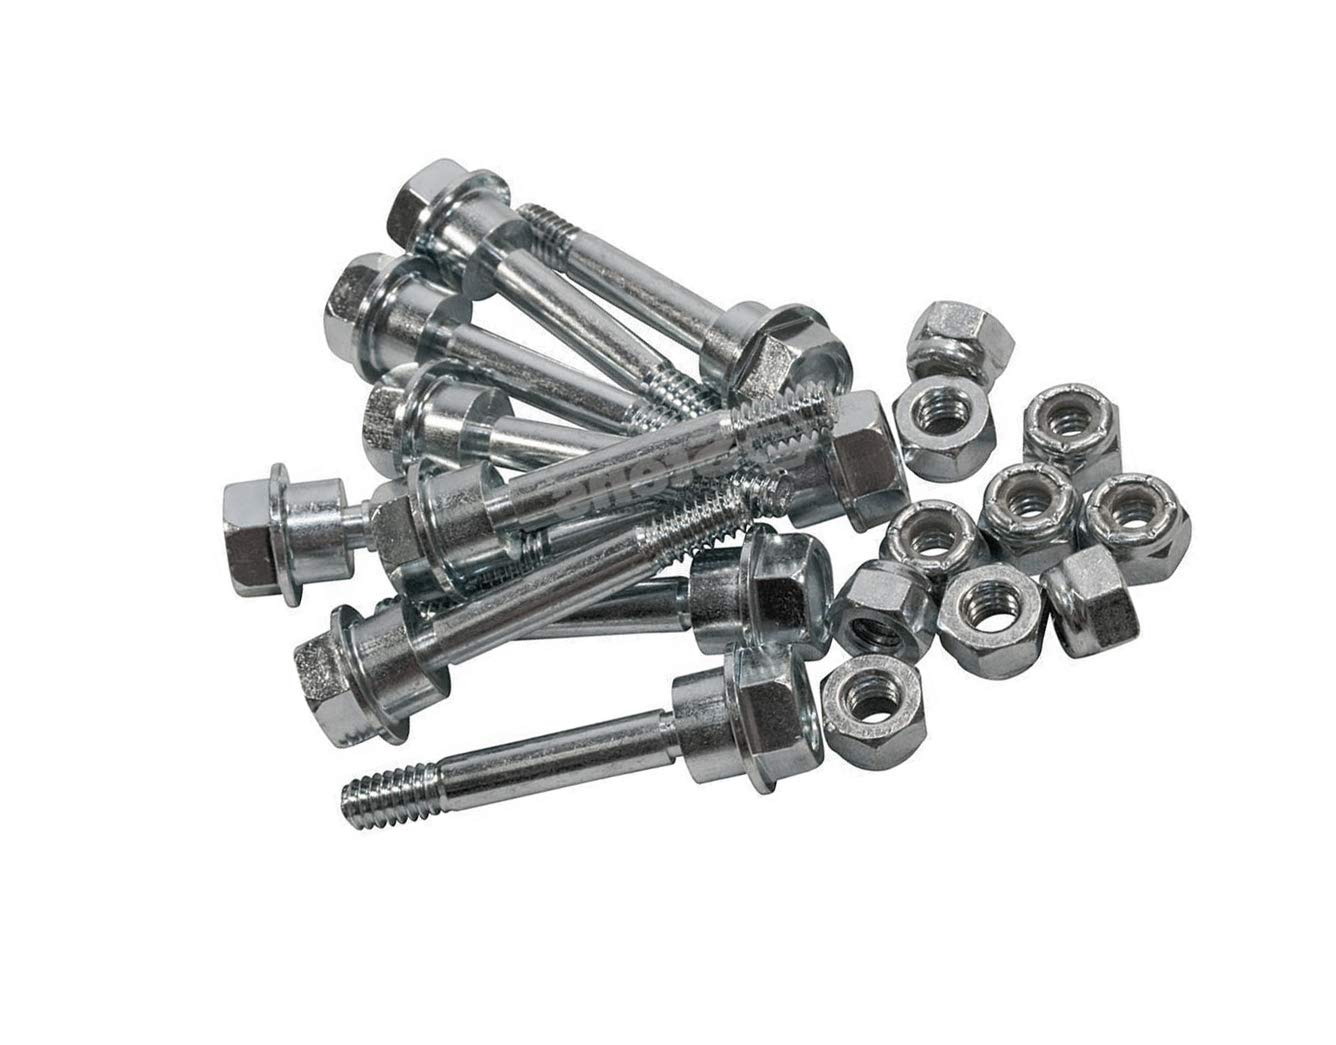 Snow Blowers 780-201 OEM Genuine Stens Shear Pins of Each 10 Packs Fits AYP Husqvarna Craftsman and E-Book in A Gift by Snow Blowers